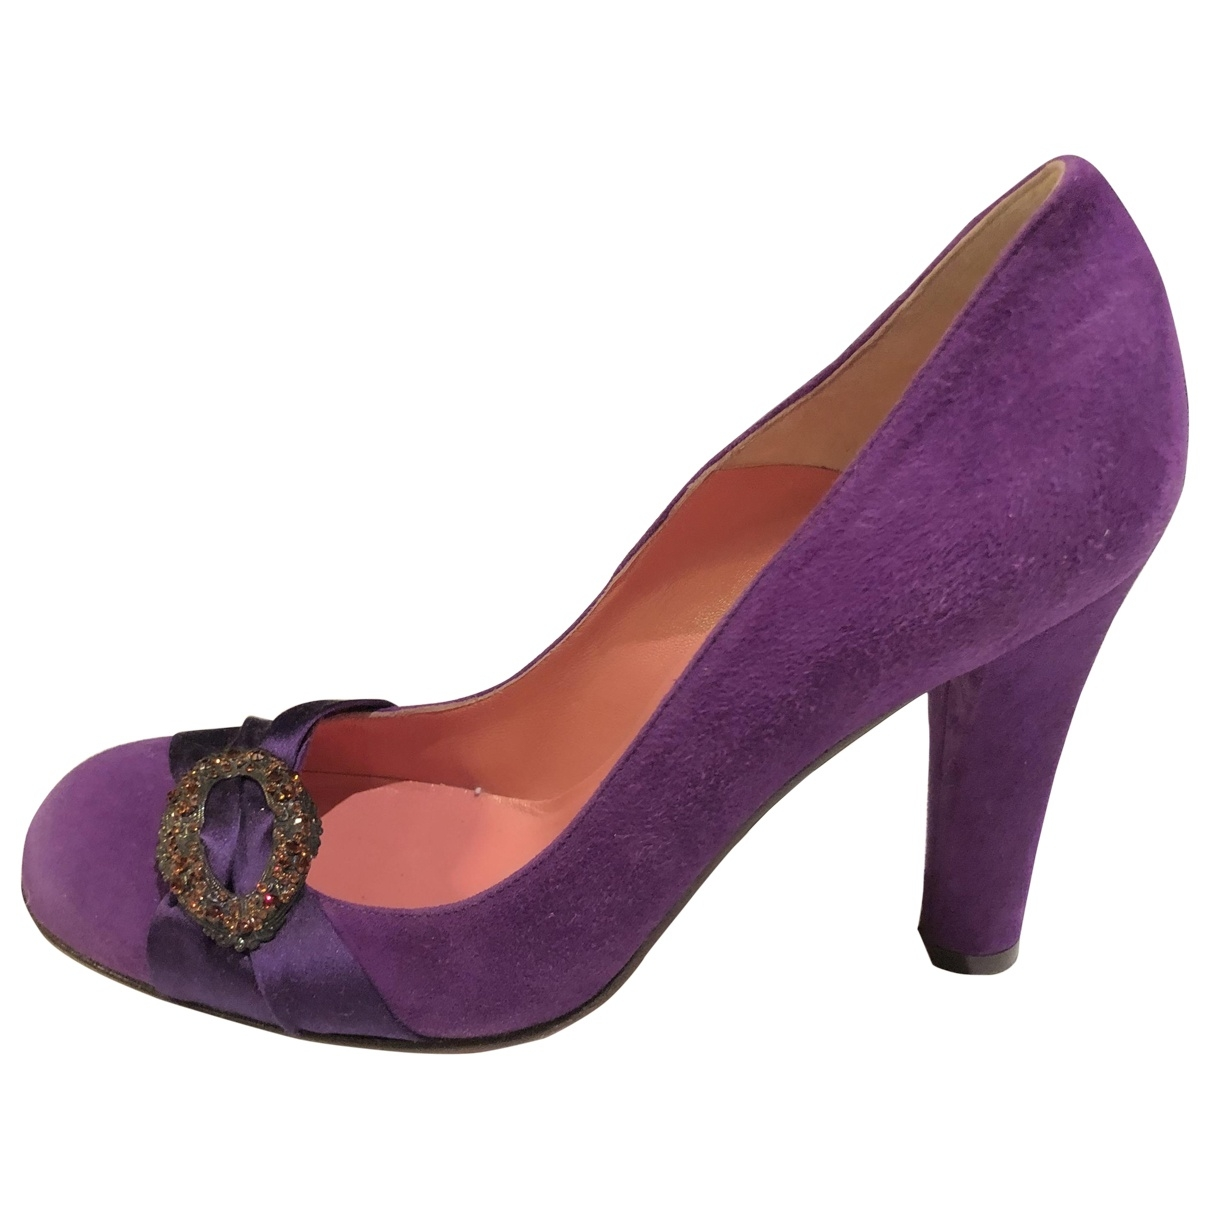 Blumarine \N Purple Suede Heels for Women 37 EU